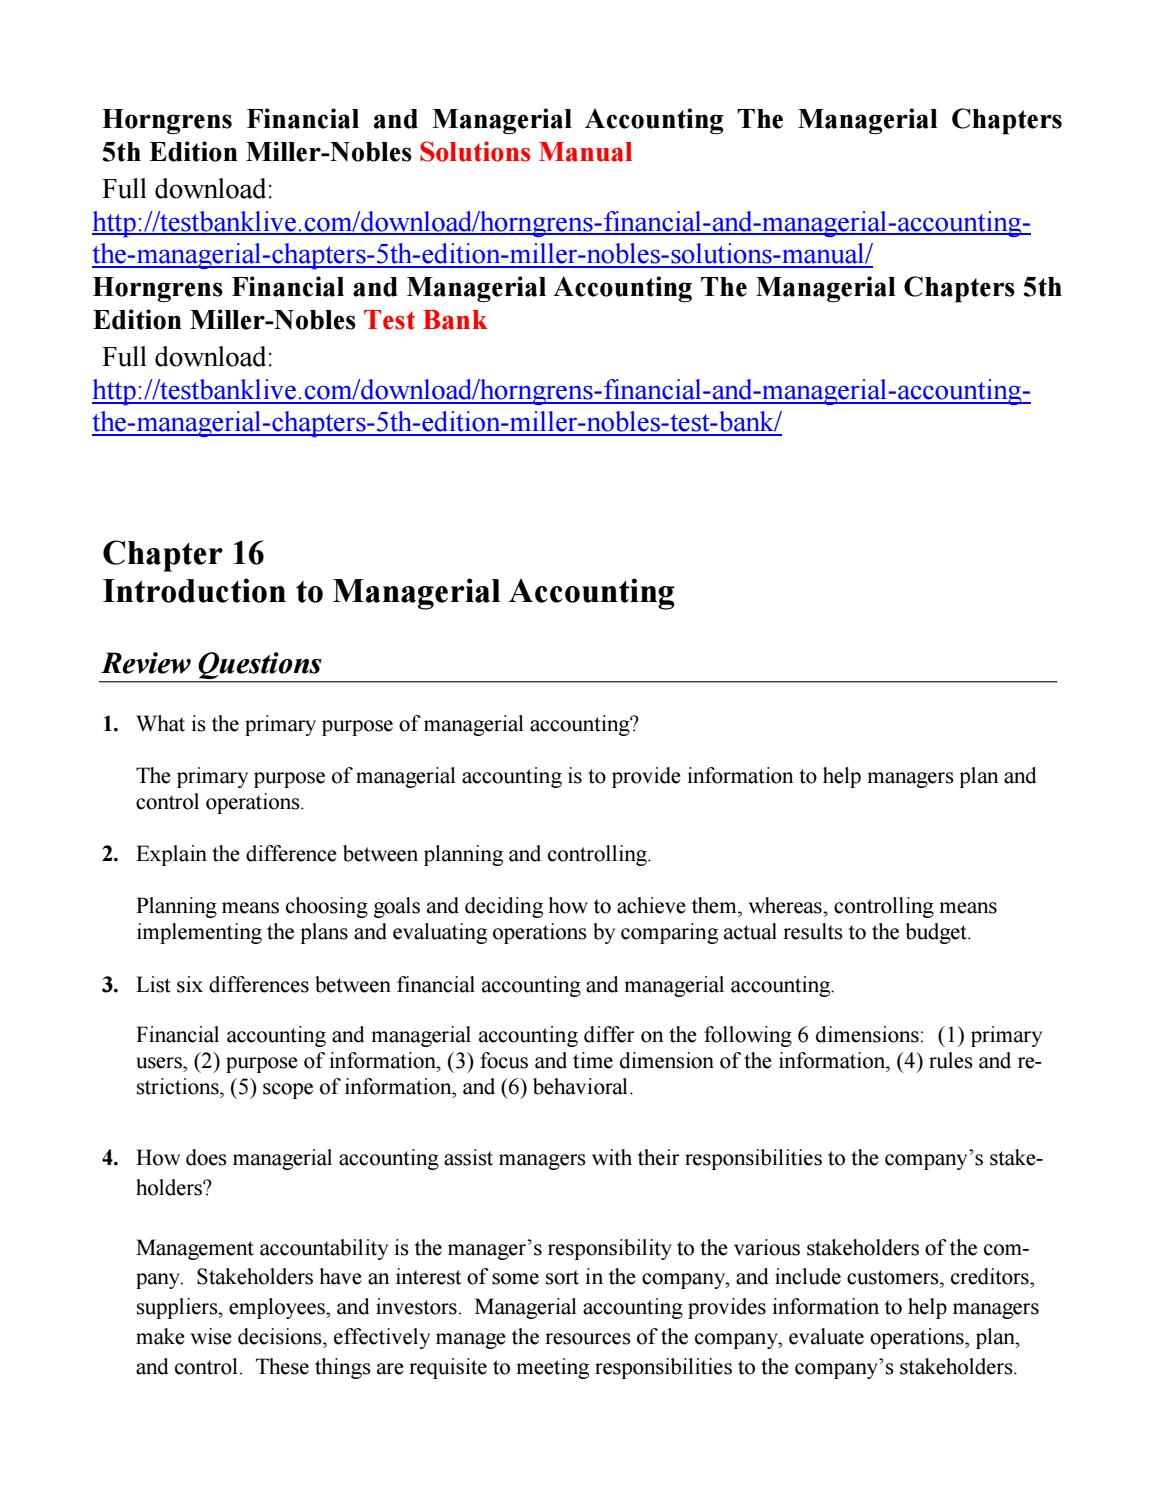 Horngrens financial and managerial accounting the managerial chapters 5th  edition miller nobles solu by lalala111 - issuu